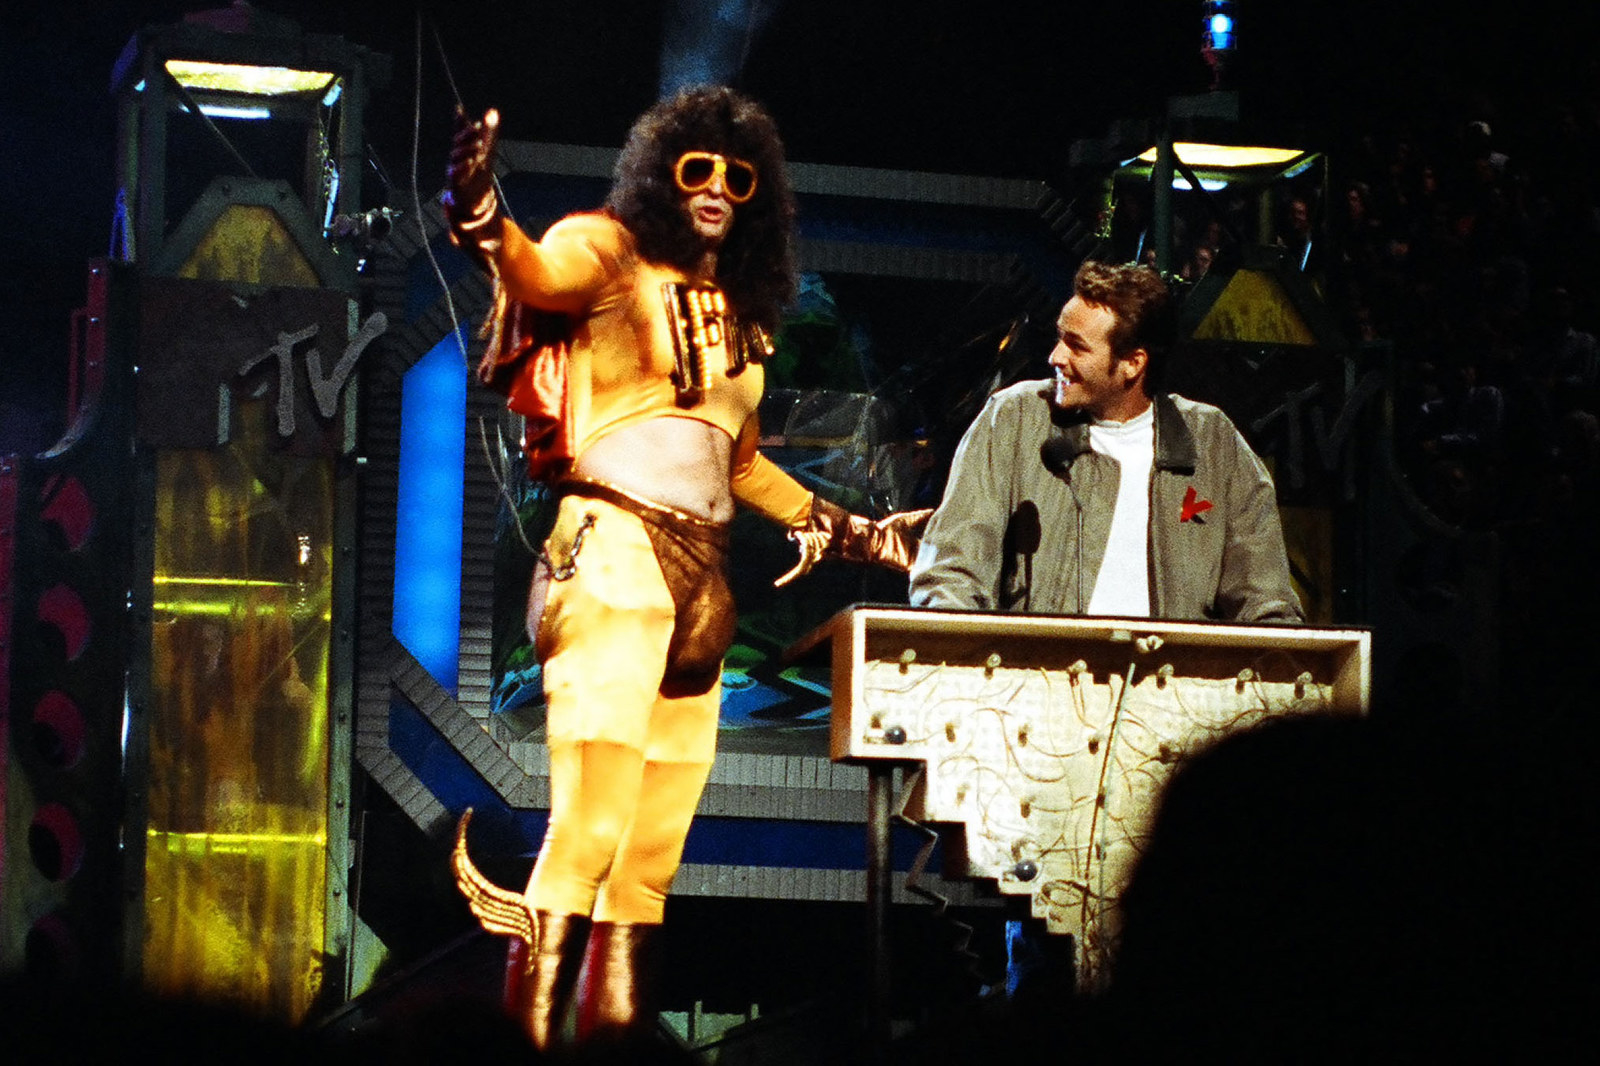 Howard Stern and Luke Perry during the 1992 MTV Video Music Awards in Los Angeles.